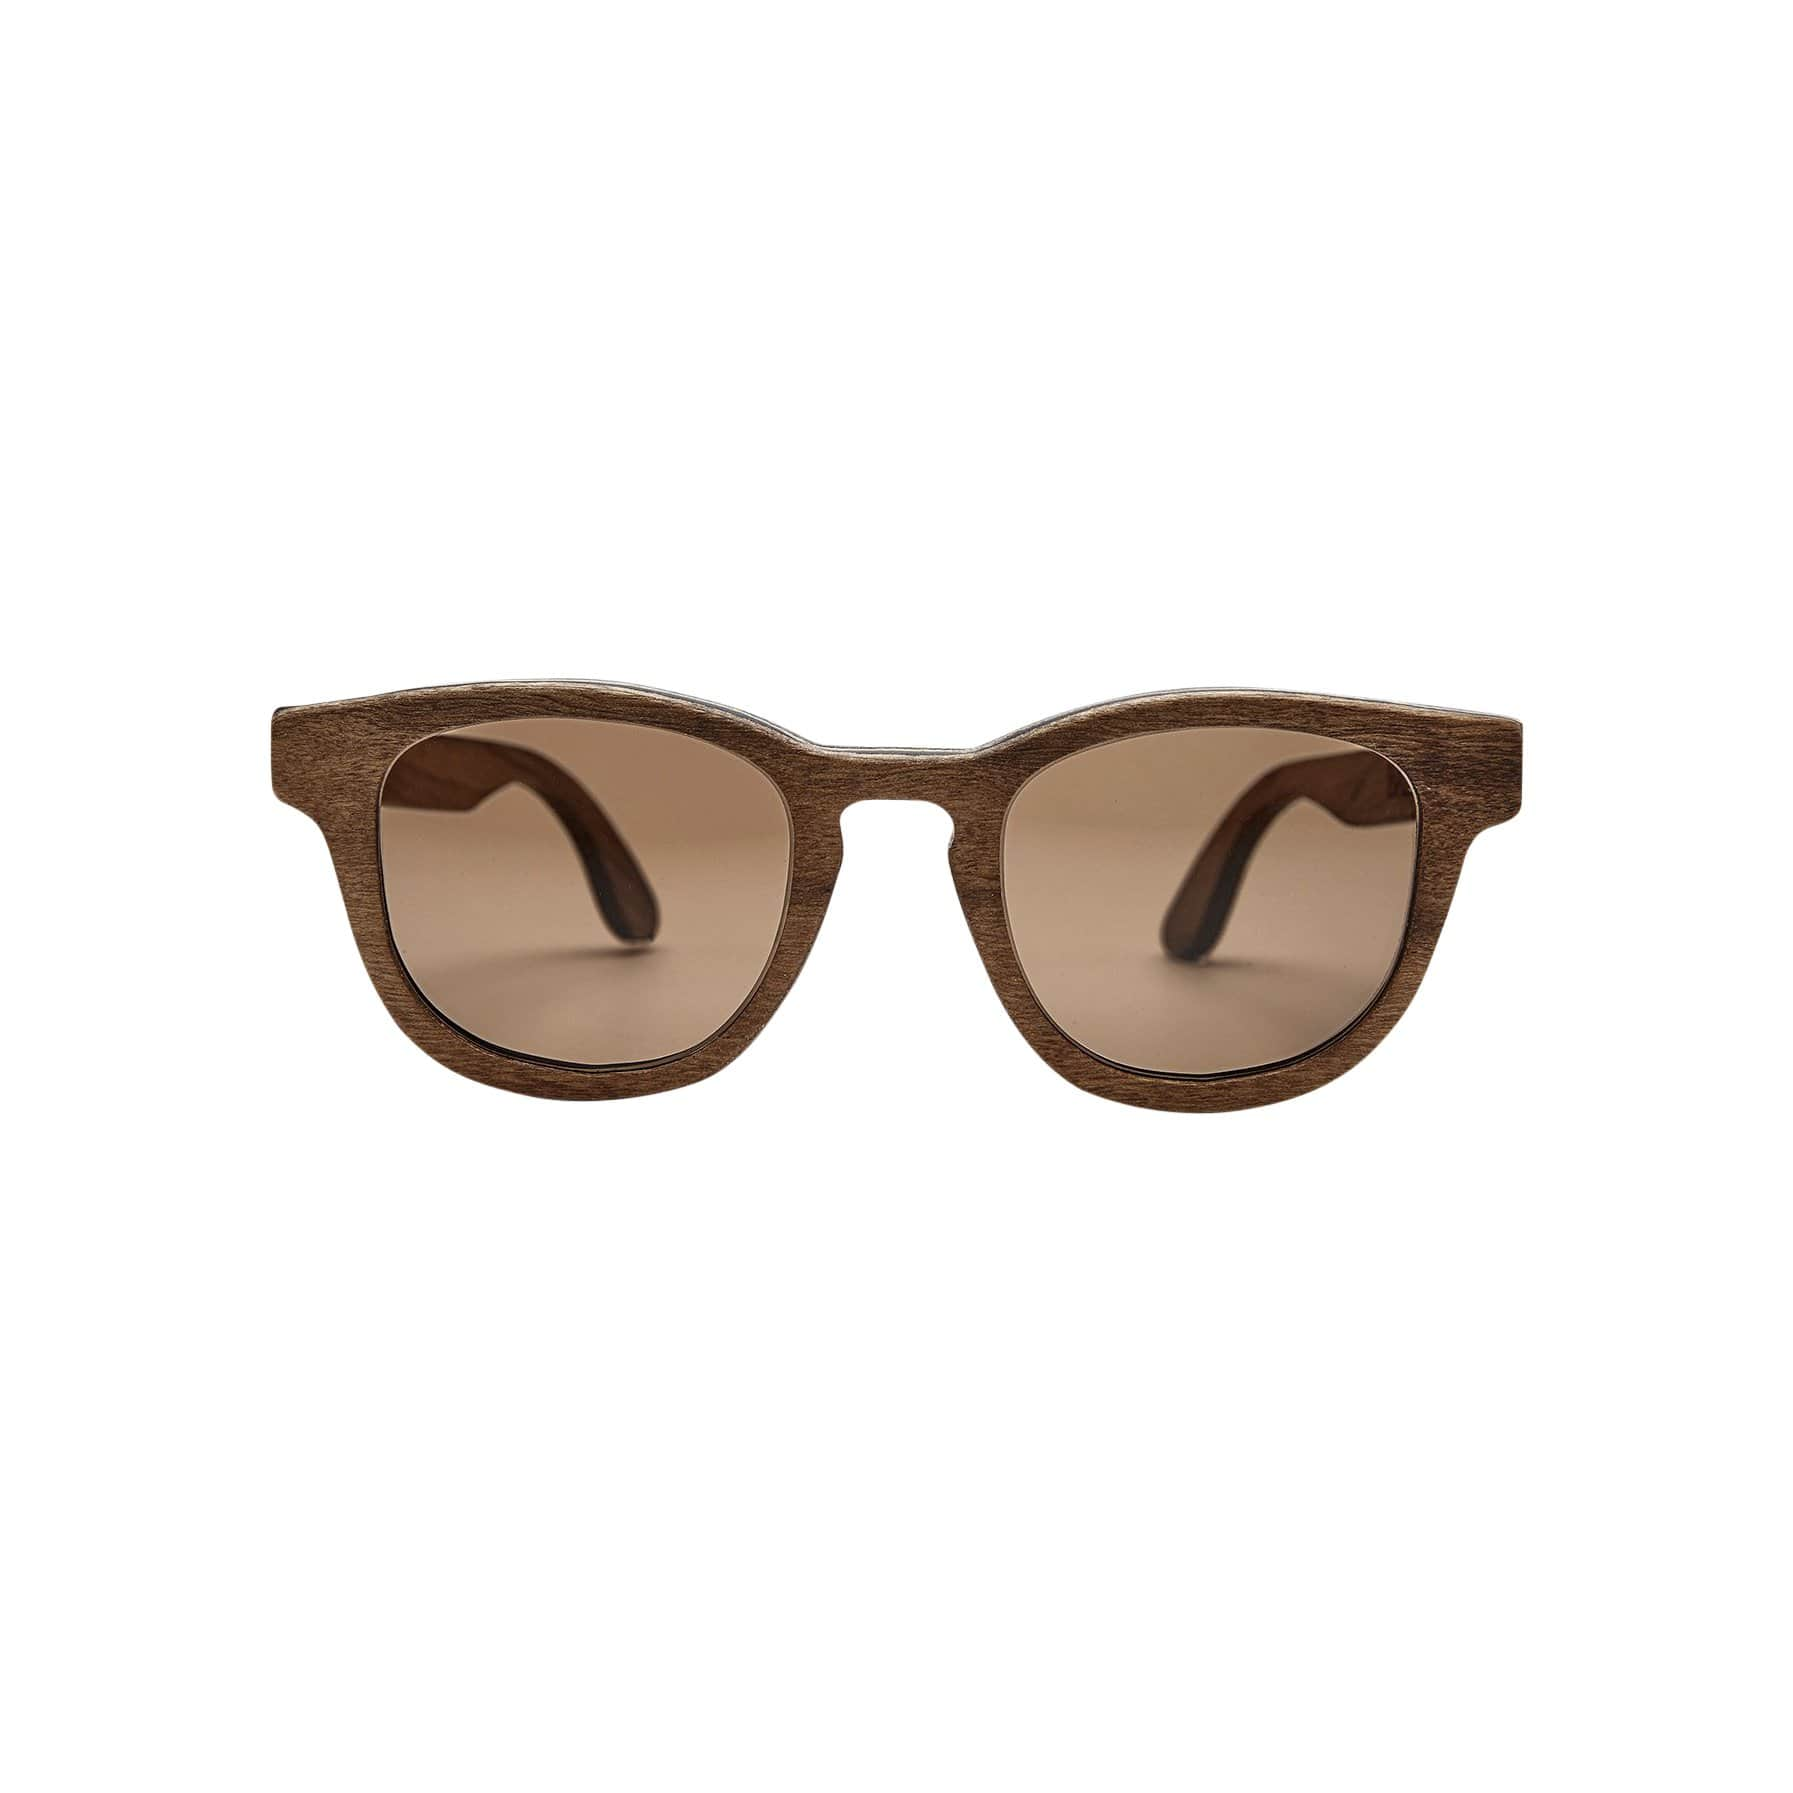 Ballo Sunglasses + Eyewear Rowli with Imbuia Wood